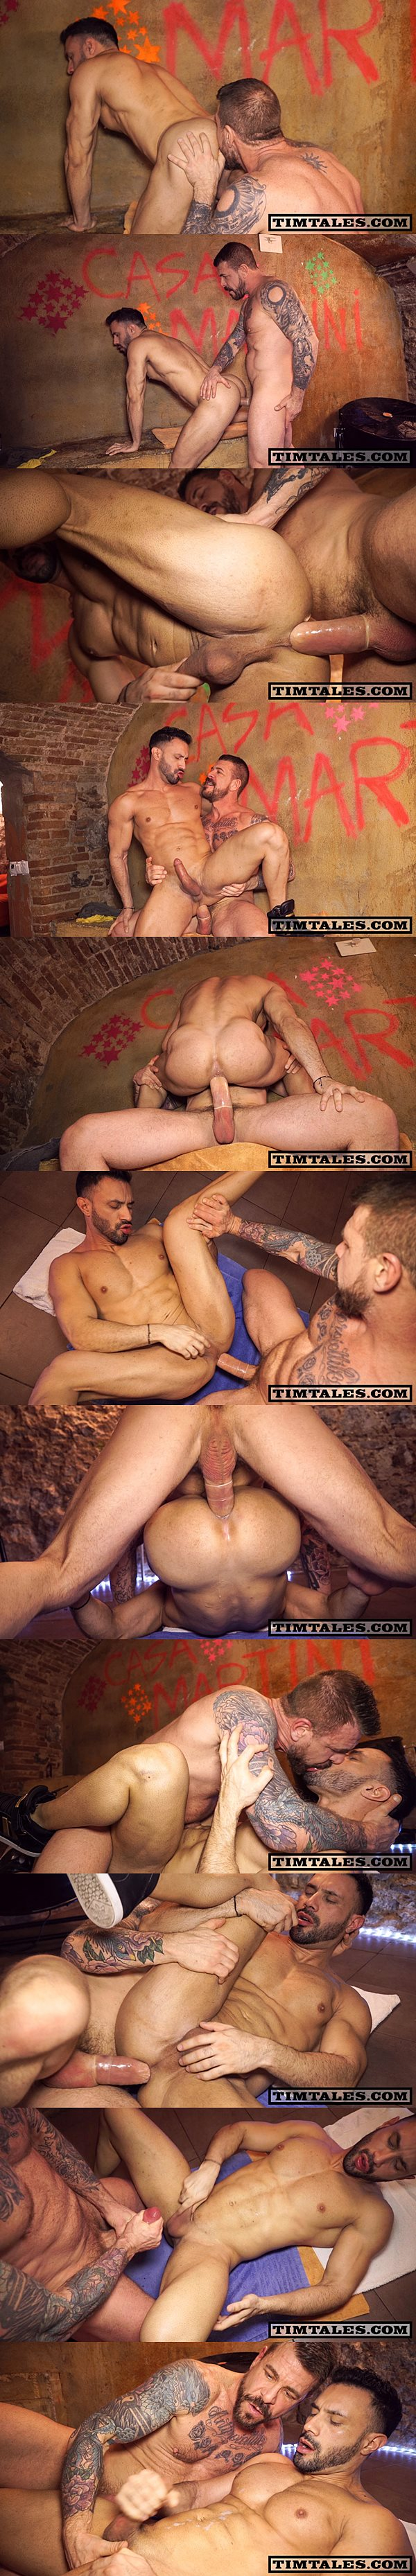 Big-dicked muscle daddy Rocco Steele slams handsome bodybuilder Flex's muscle ass at Timtales 02